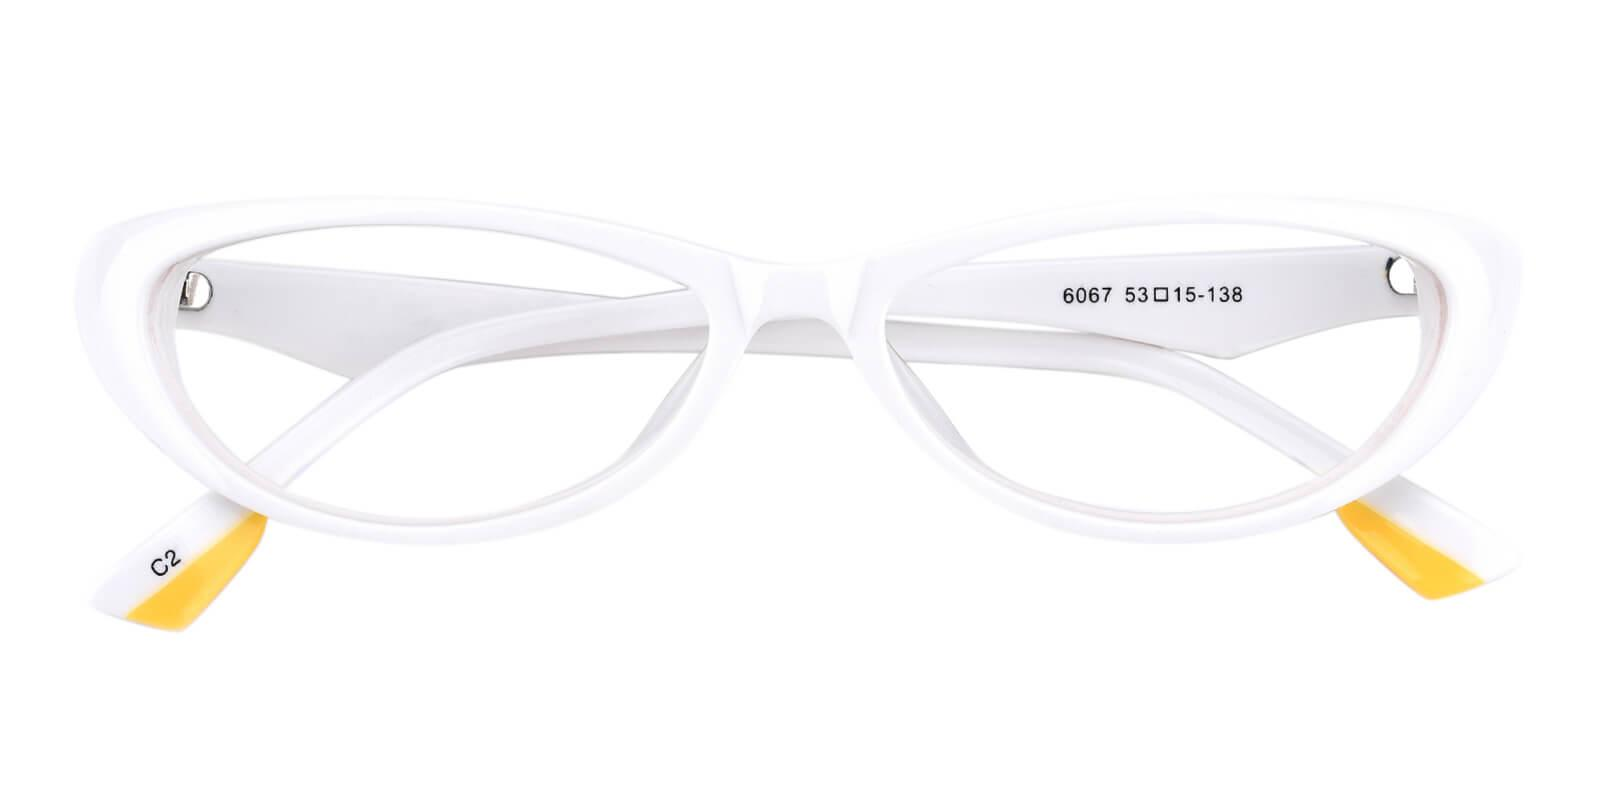 Neutral-White-Cat-Acetate-Eyeglasses-detail